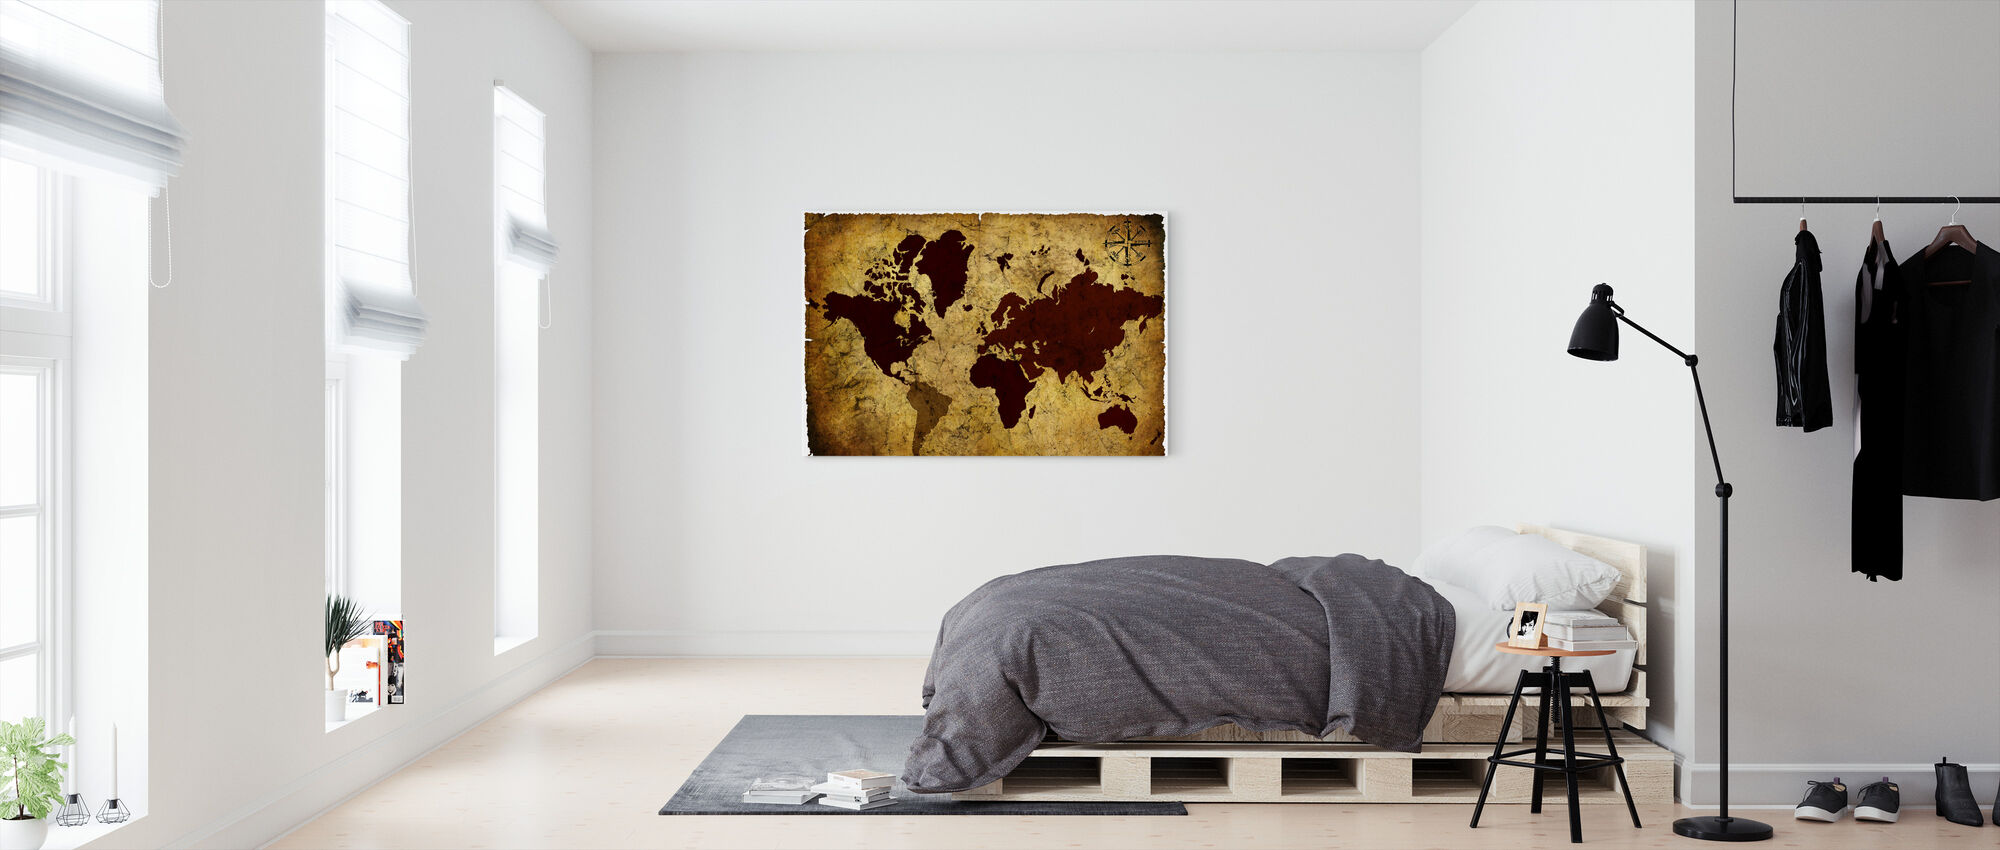 Old Manuscript of World Map - Canvas print - Bedroom